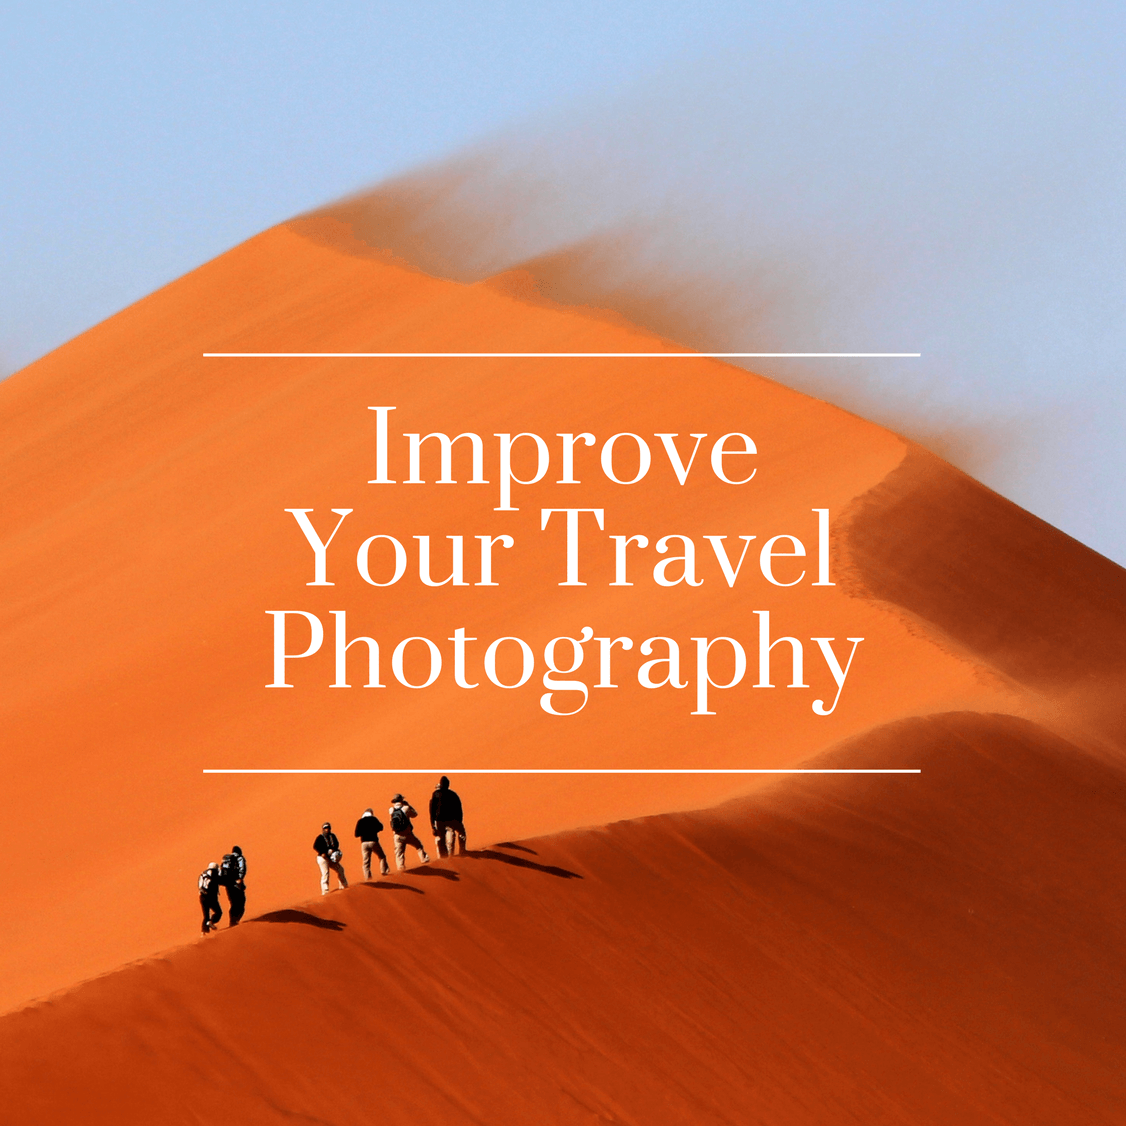 Travel Photography Canva